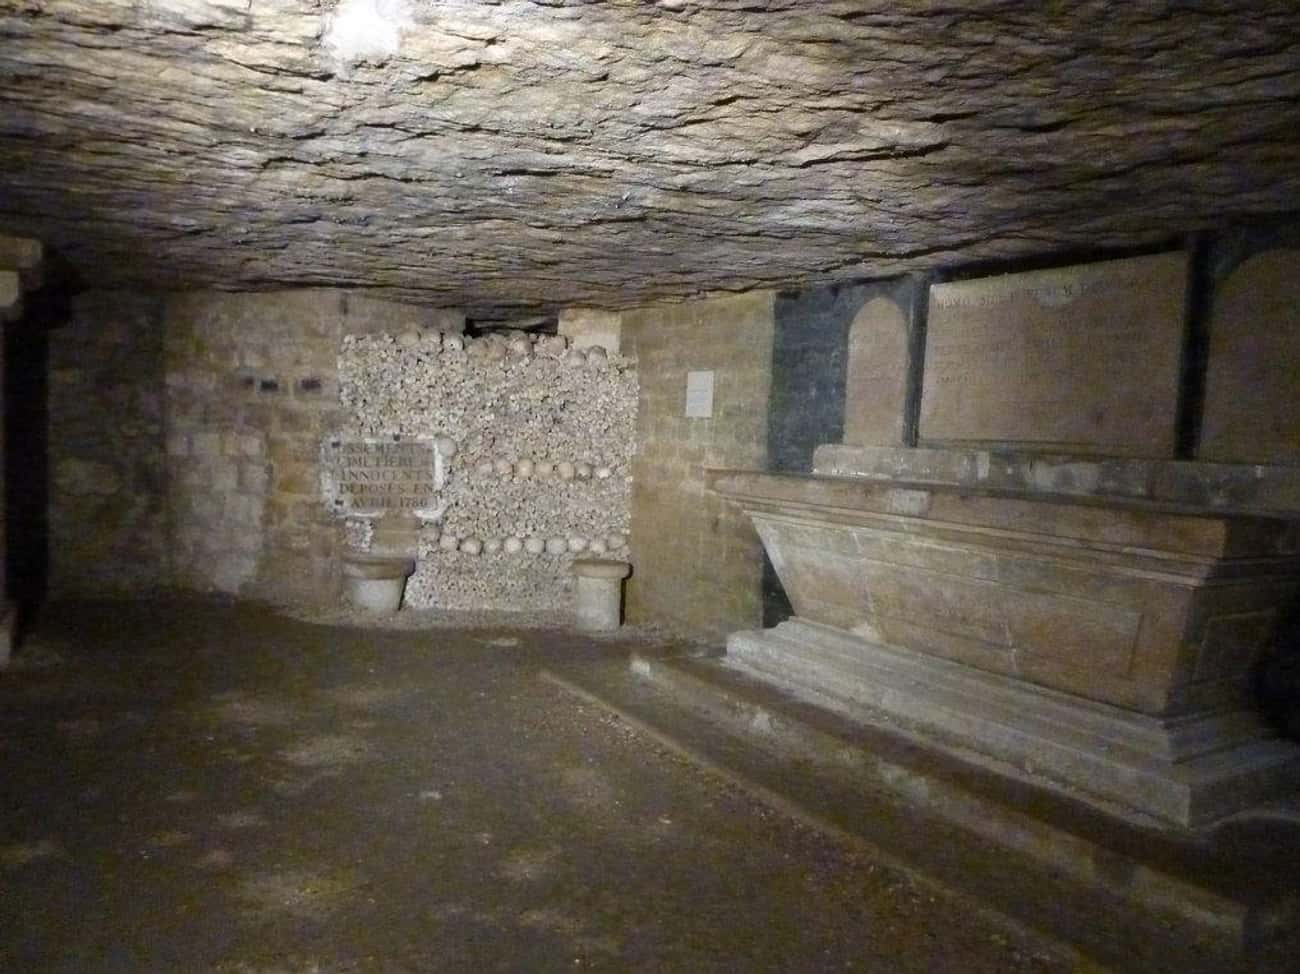 18th-Century Paris Was Full Of is listed (or ranked) 2 on the list The Paris Catacombs Hide A Secret Cinema Club And Pools, In Addition To Six Million Dead